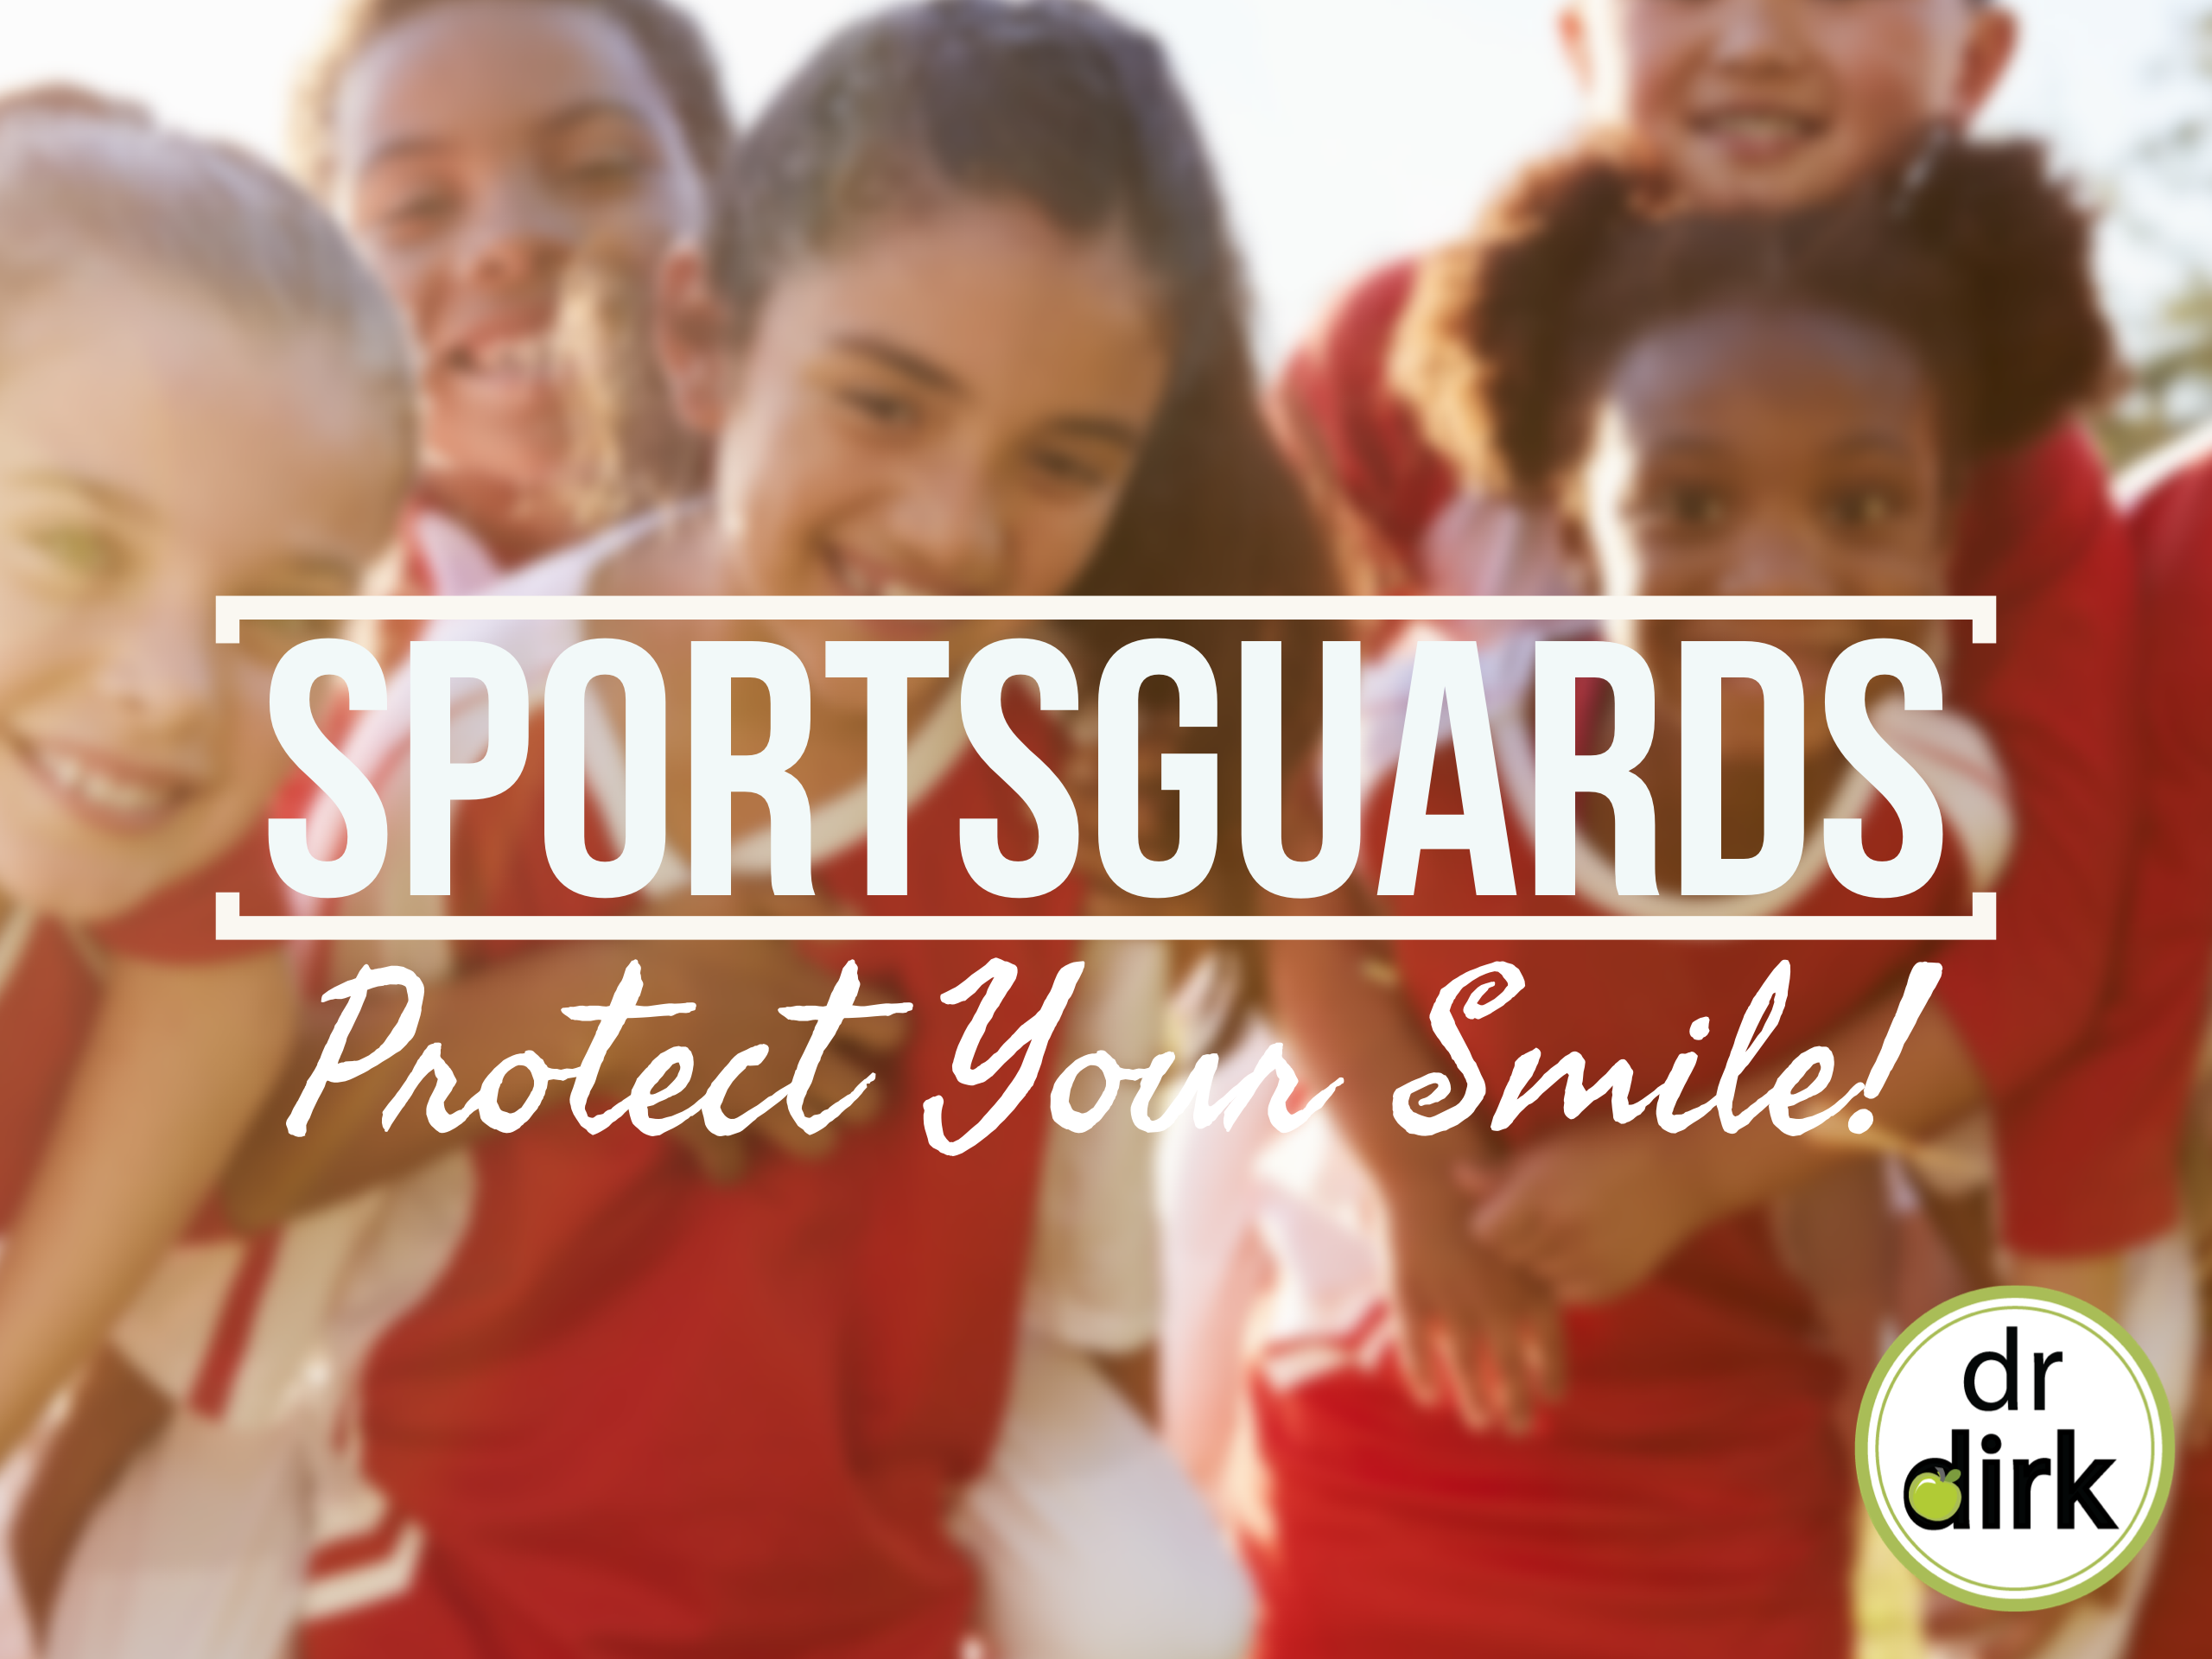 When Should I Use A Mouthguard?